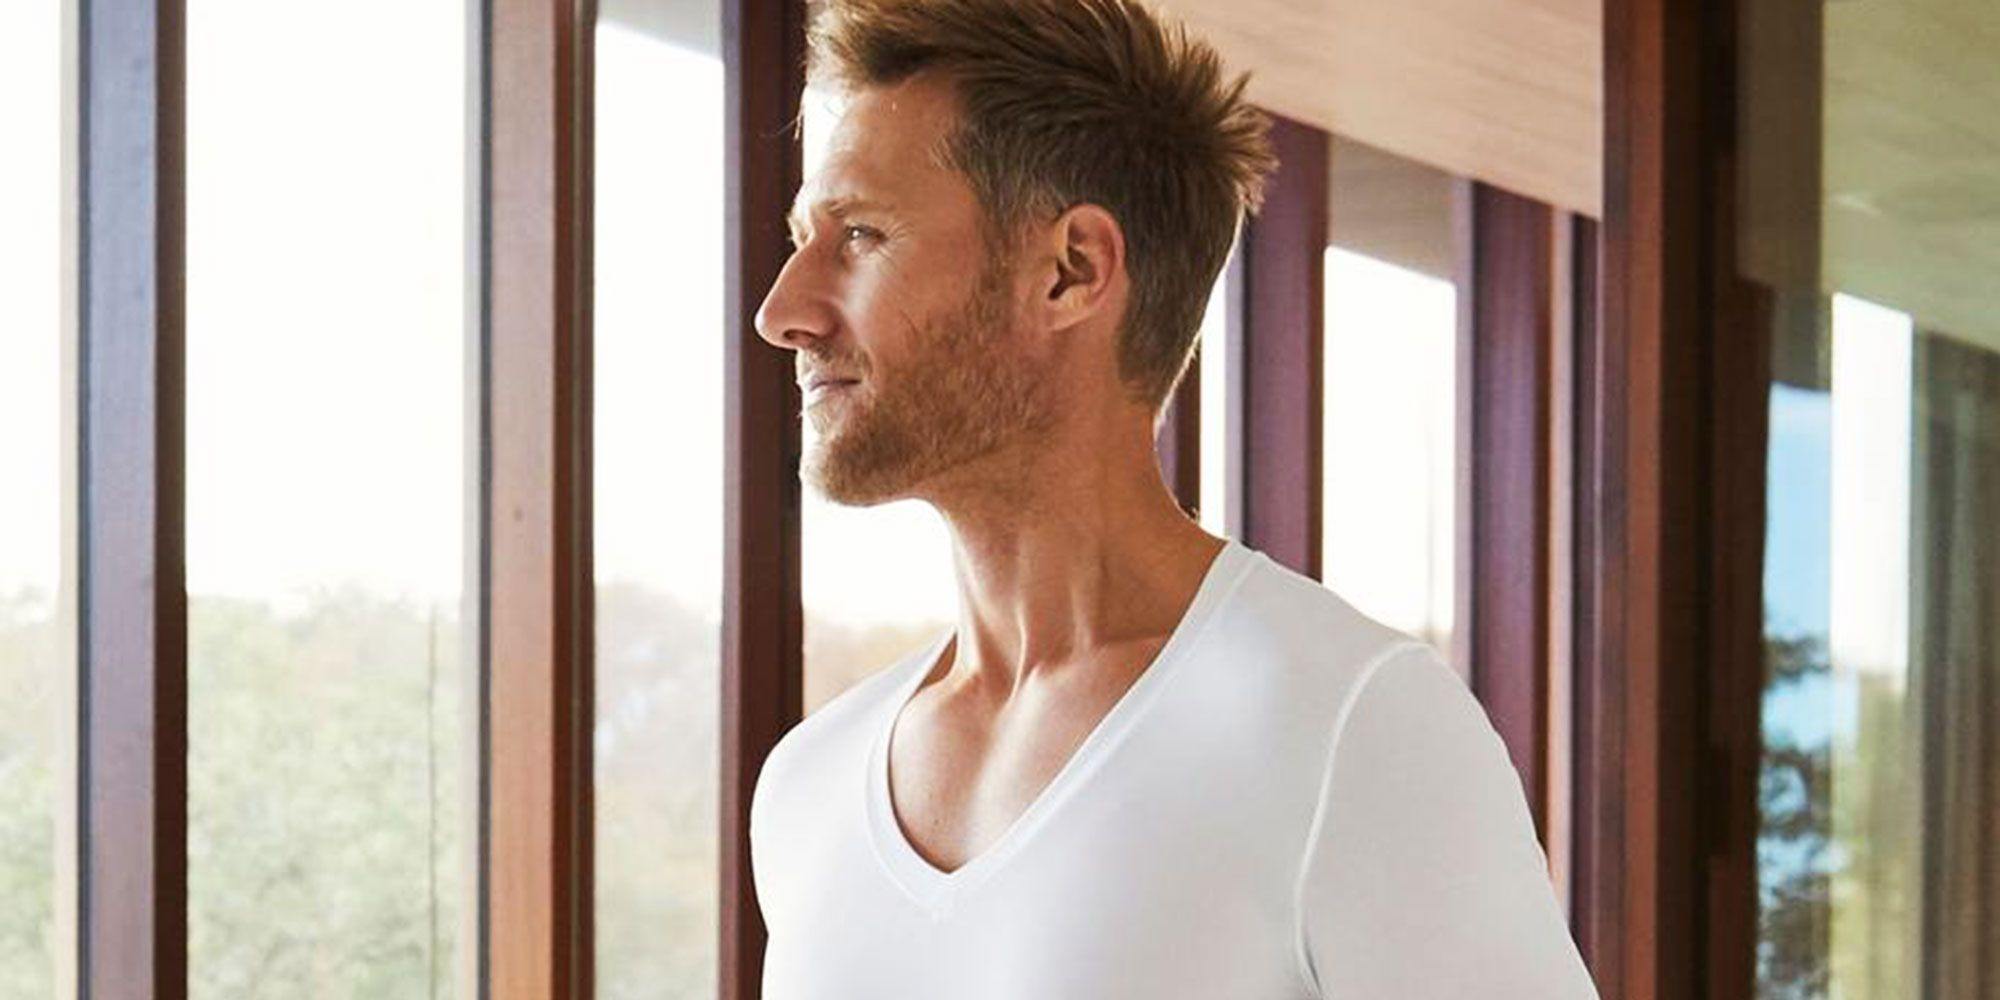 The 16 Best Undershirts for Men to Control Armpit Sweat